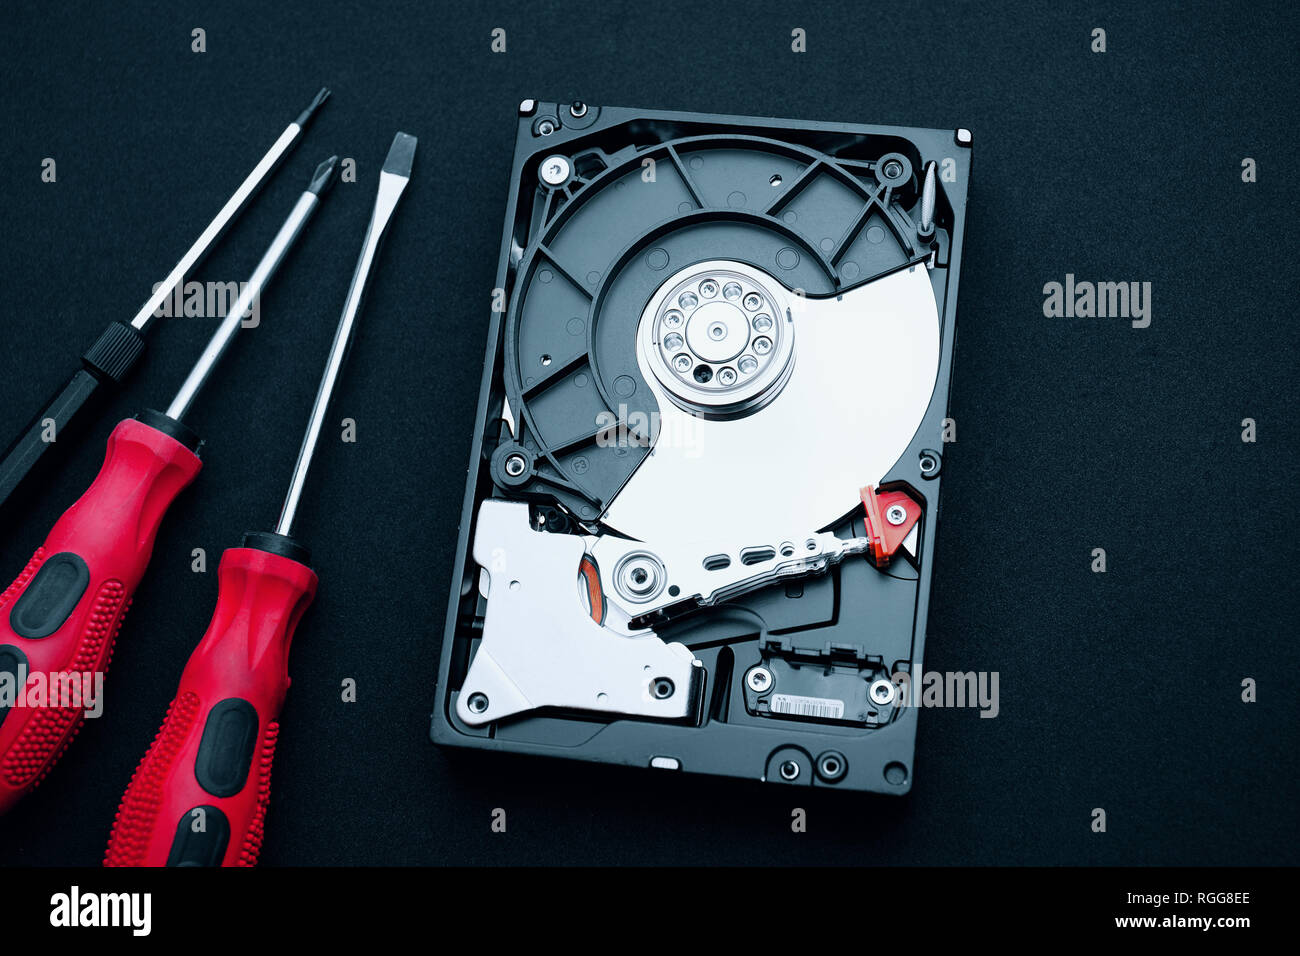 Top view of uncovered hard drive and screwdrivers on the desk. Hardware assembly inside showing magnetic platters discs and actuator read/write arm. - Stock Image